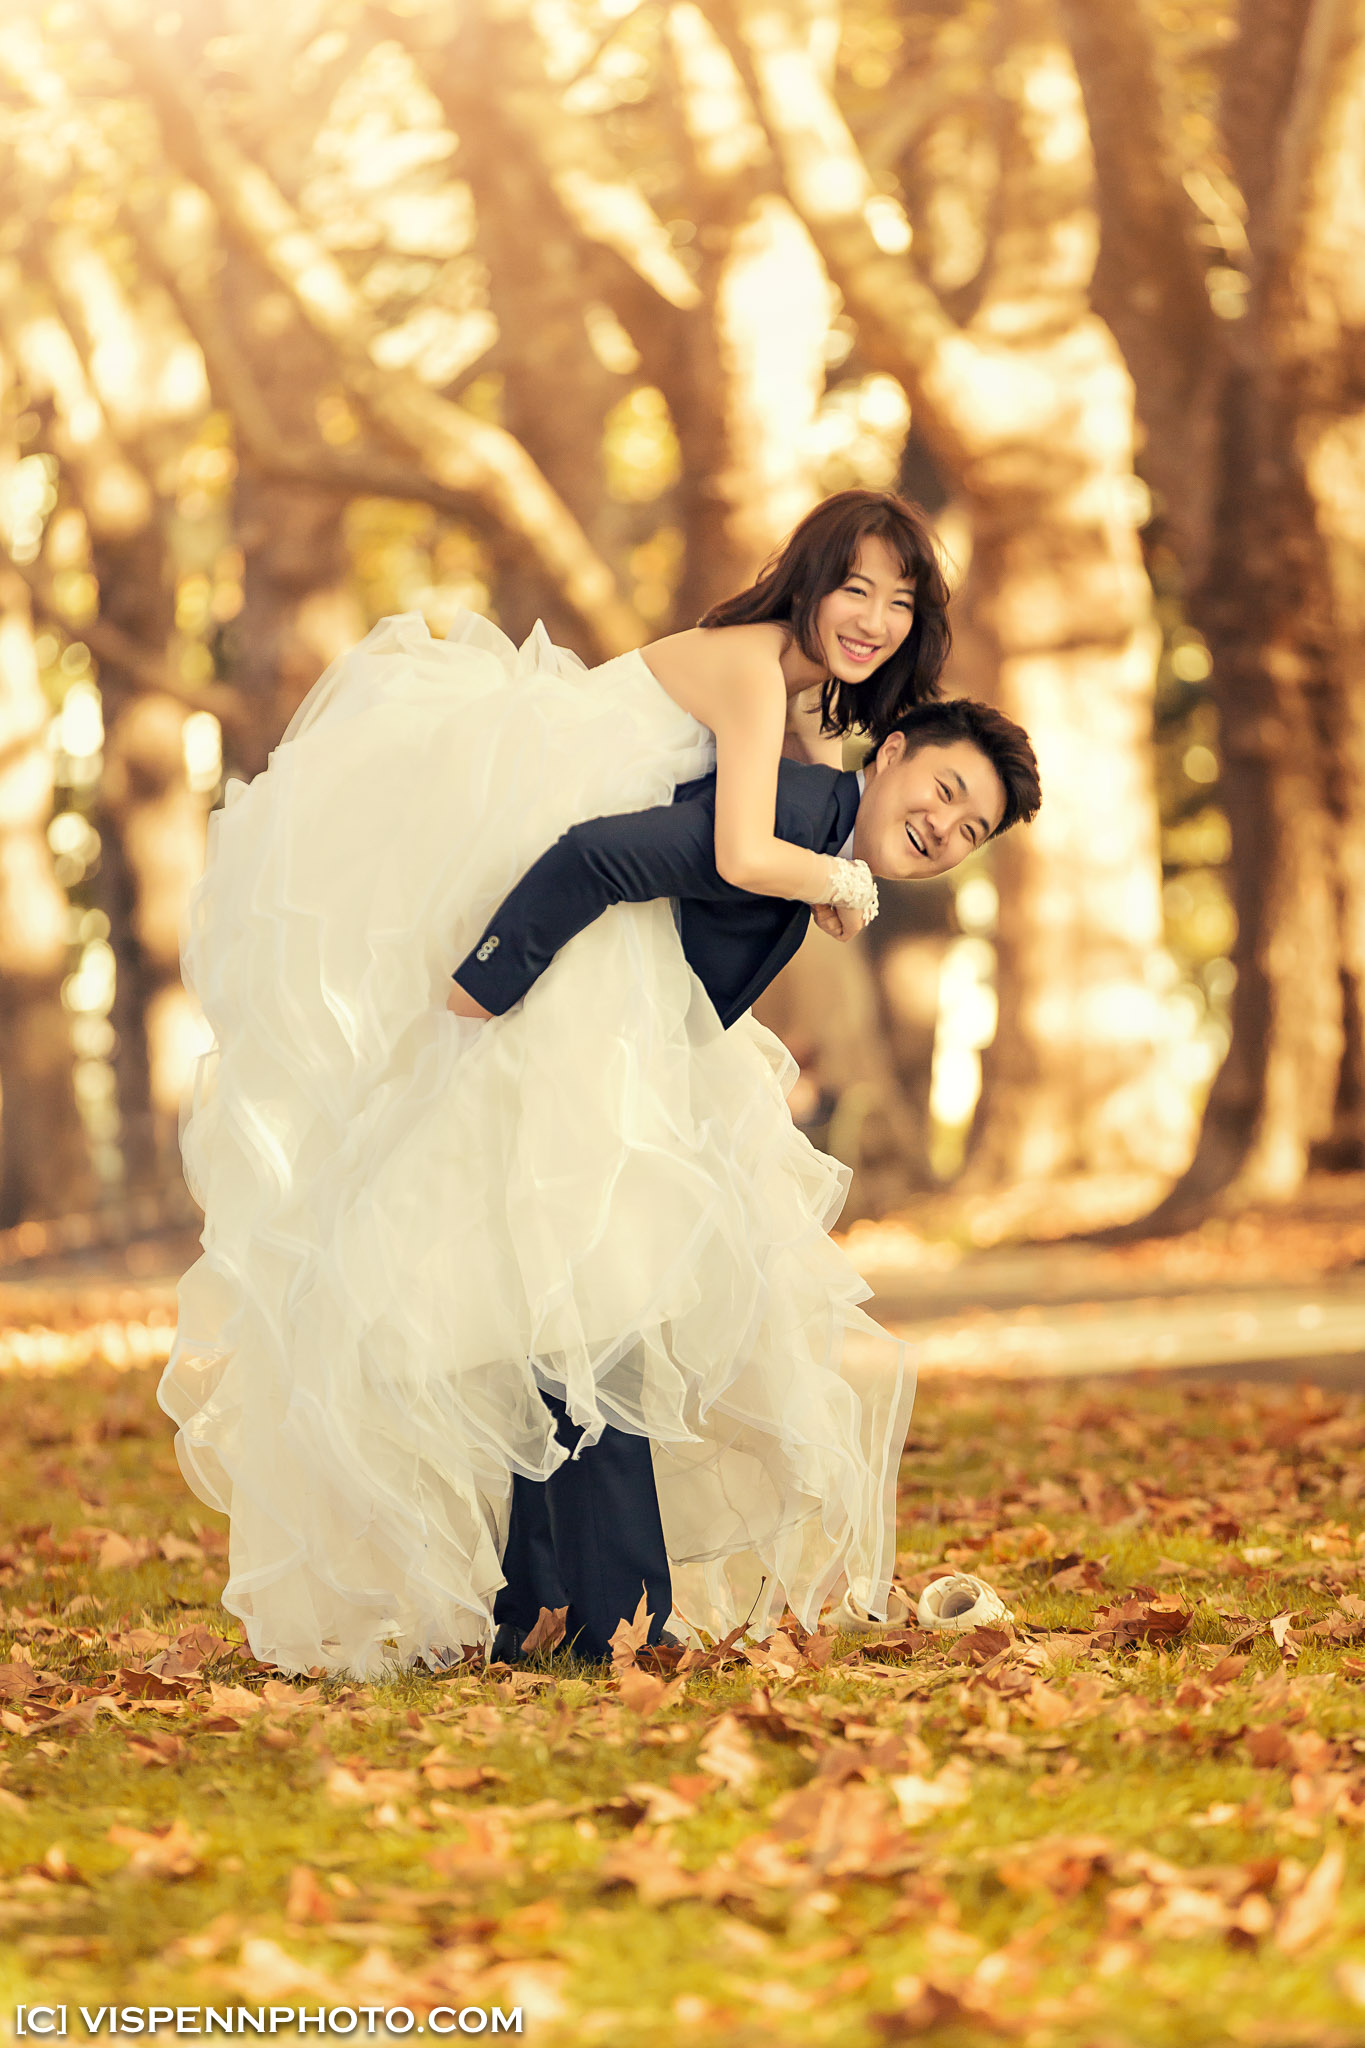 PRE WEDDING Photography Melbourne 5D1 2898